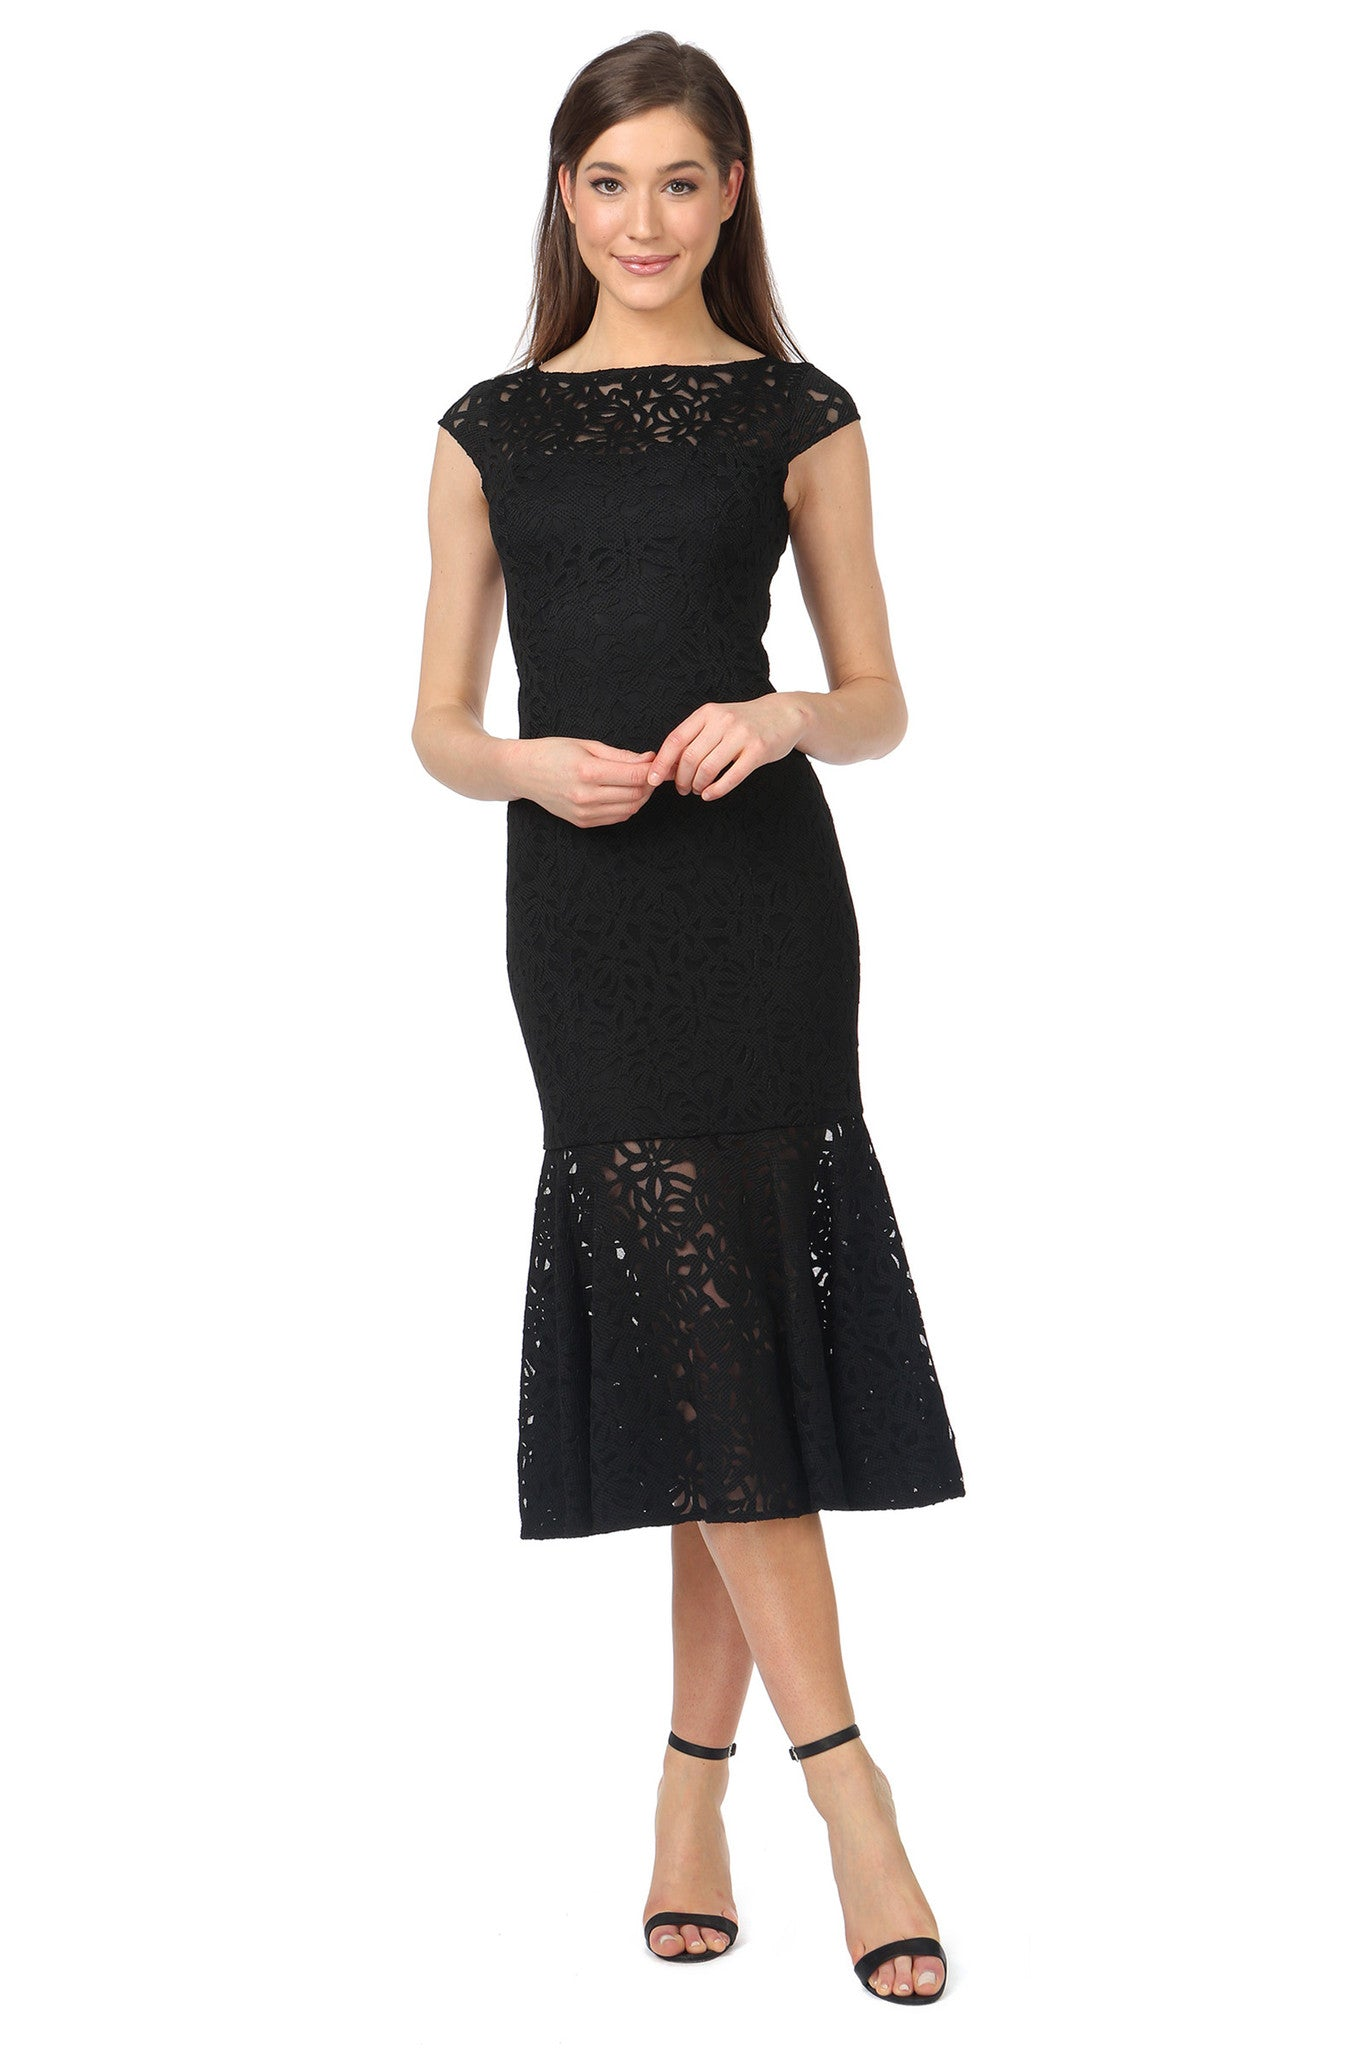 Jay Godfrey Cap-Sleeve Black Lace Dress - Front View